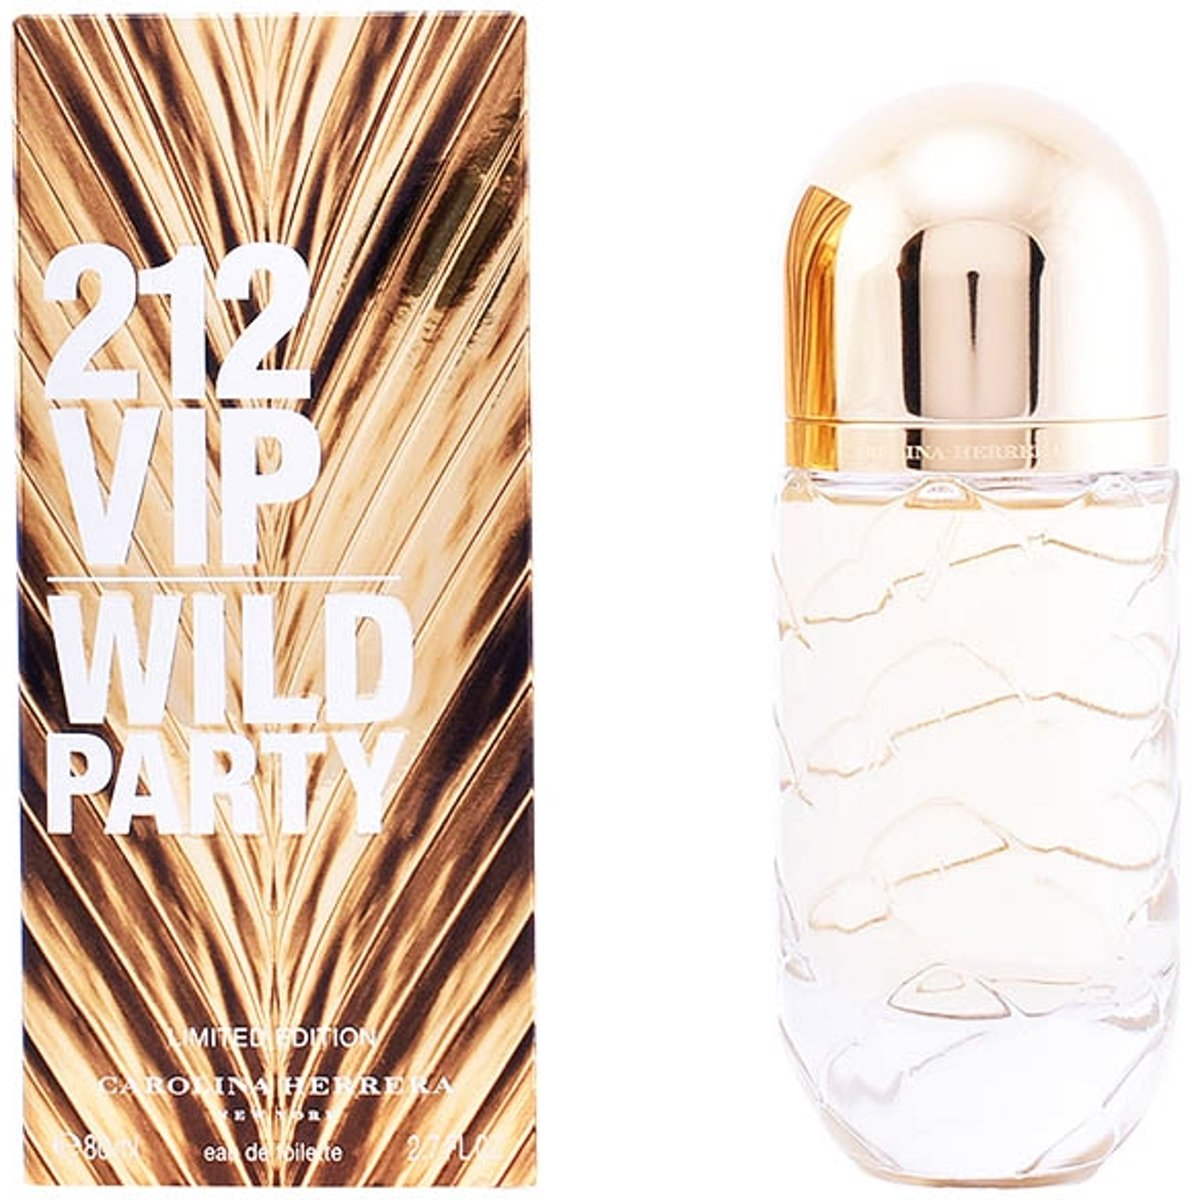 Carolina Herrera 212 VIP Wild Party for Women - 80 ml - eau de toilette spray